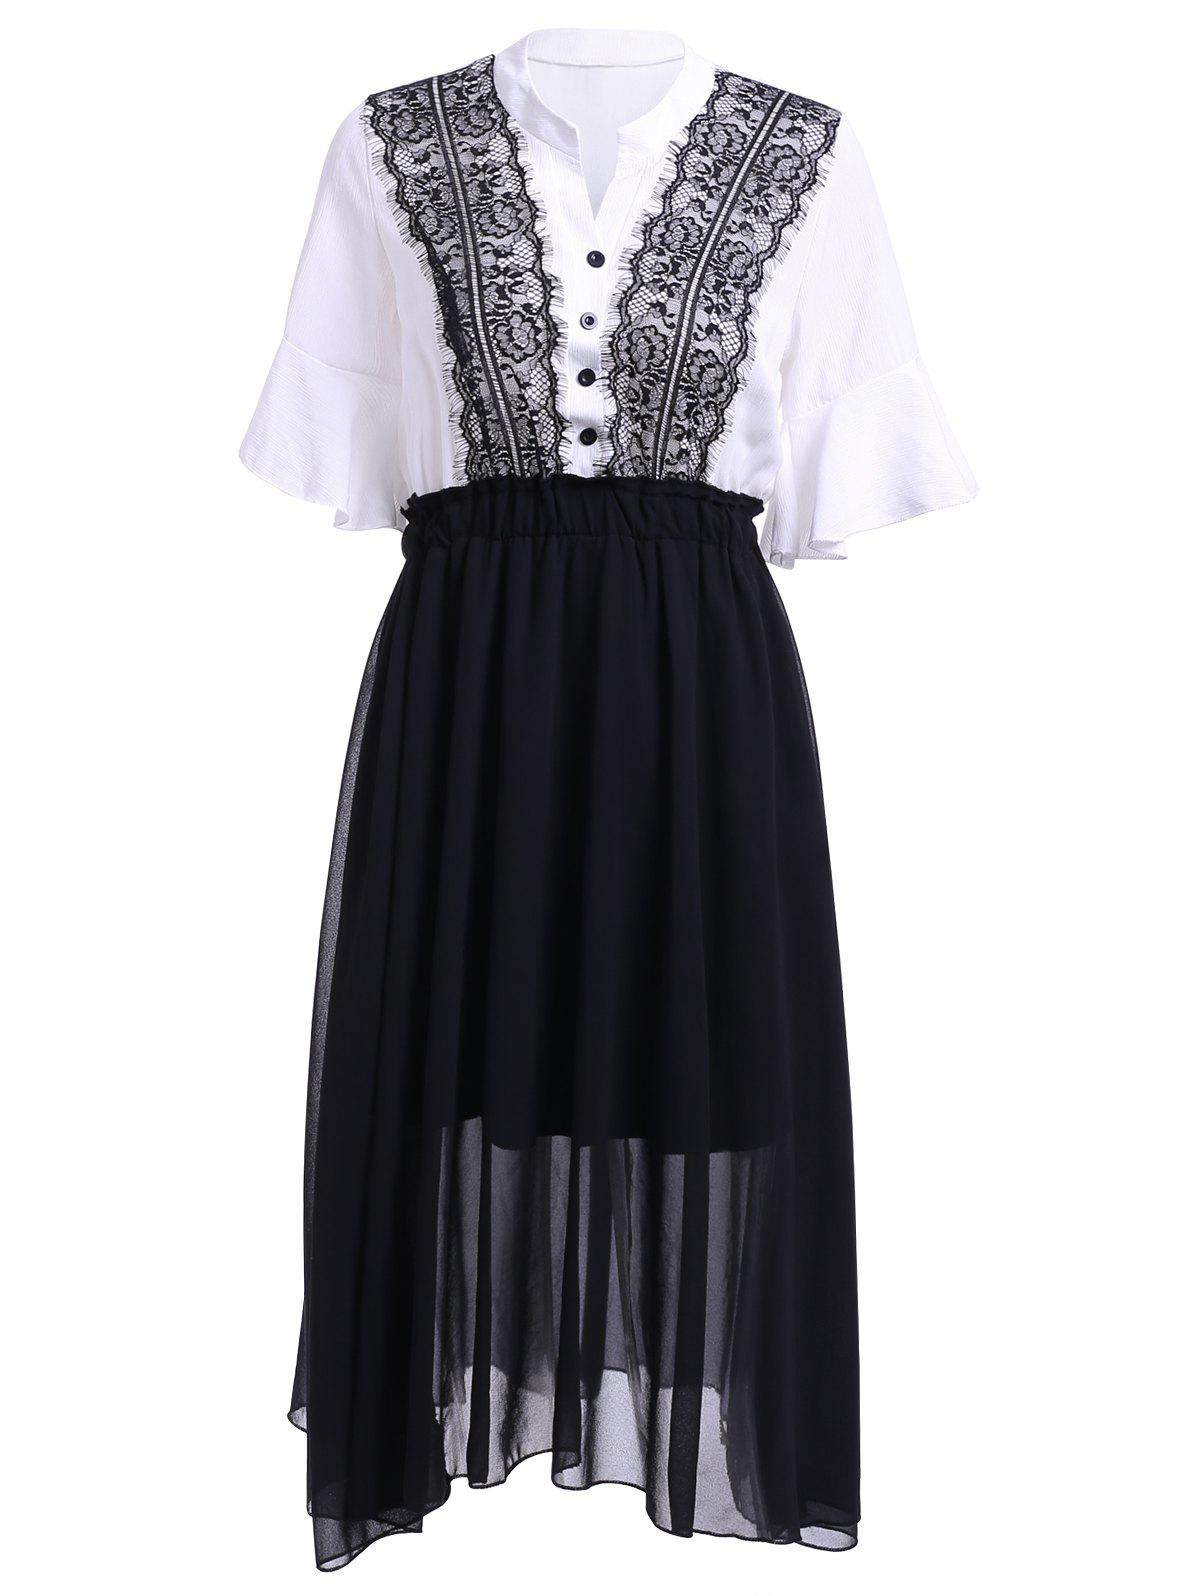 Sweet Women's V-Neck Half Sleeve High Waist Chiffon Dress - WHITE/BLACK ONE SIZE(FIT SIZE XS TO M)